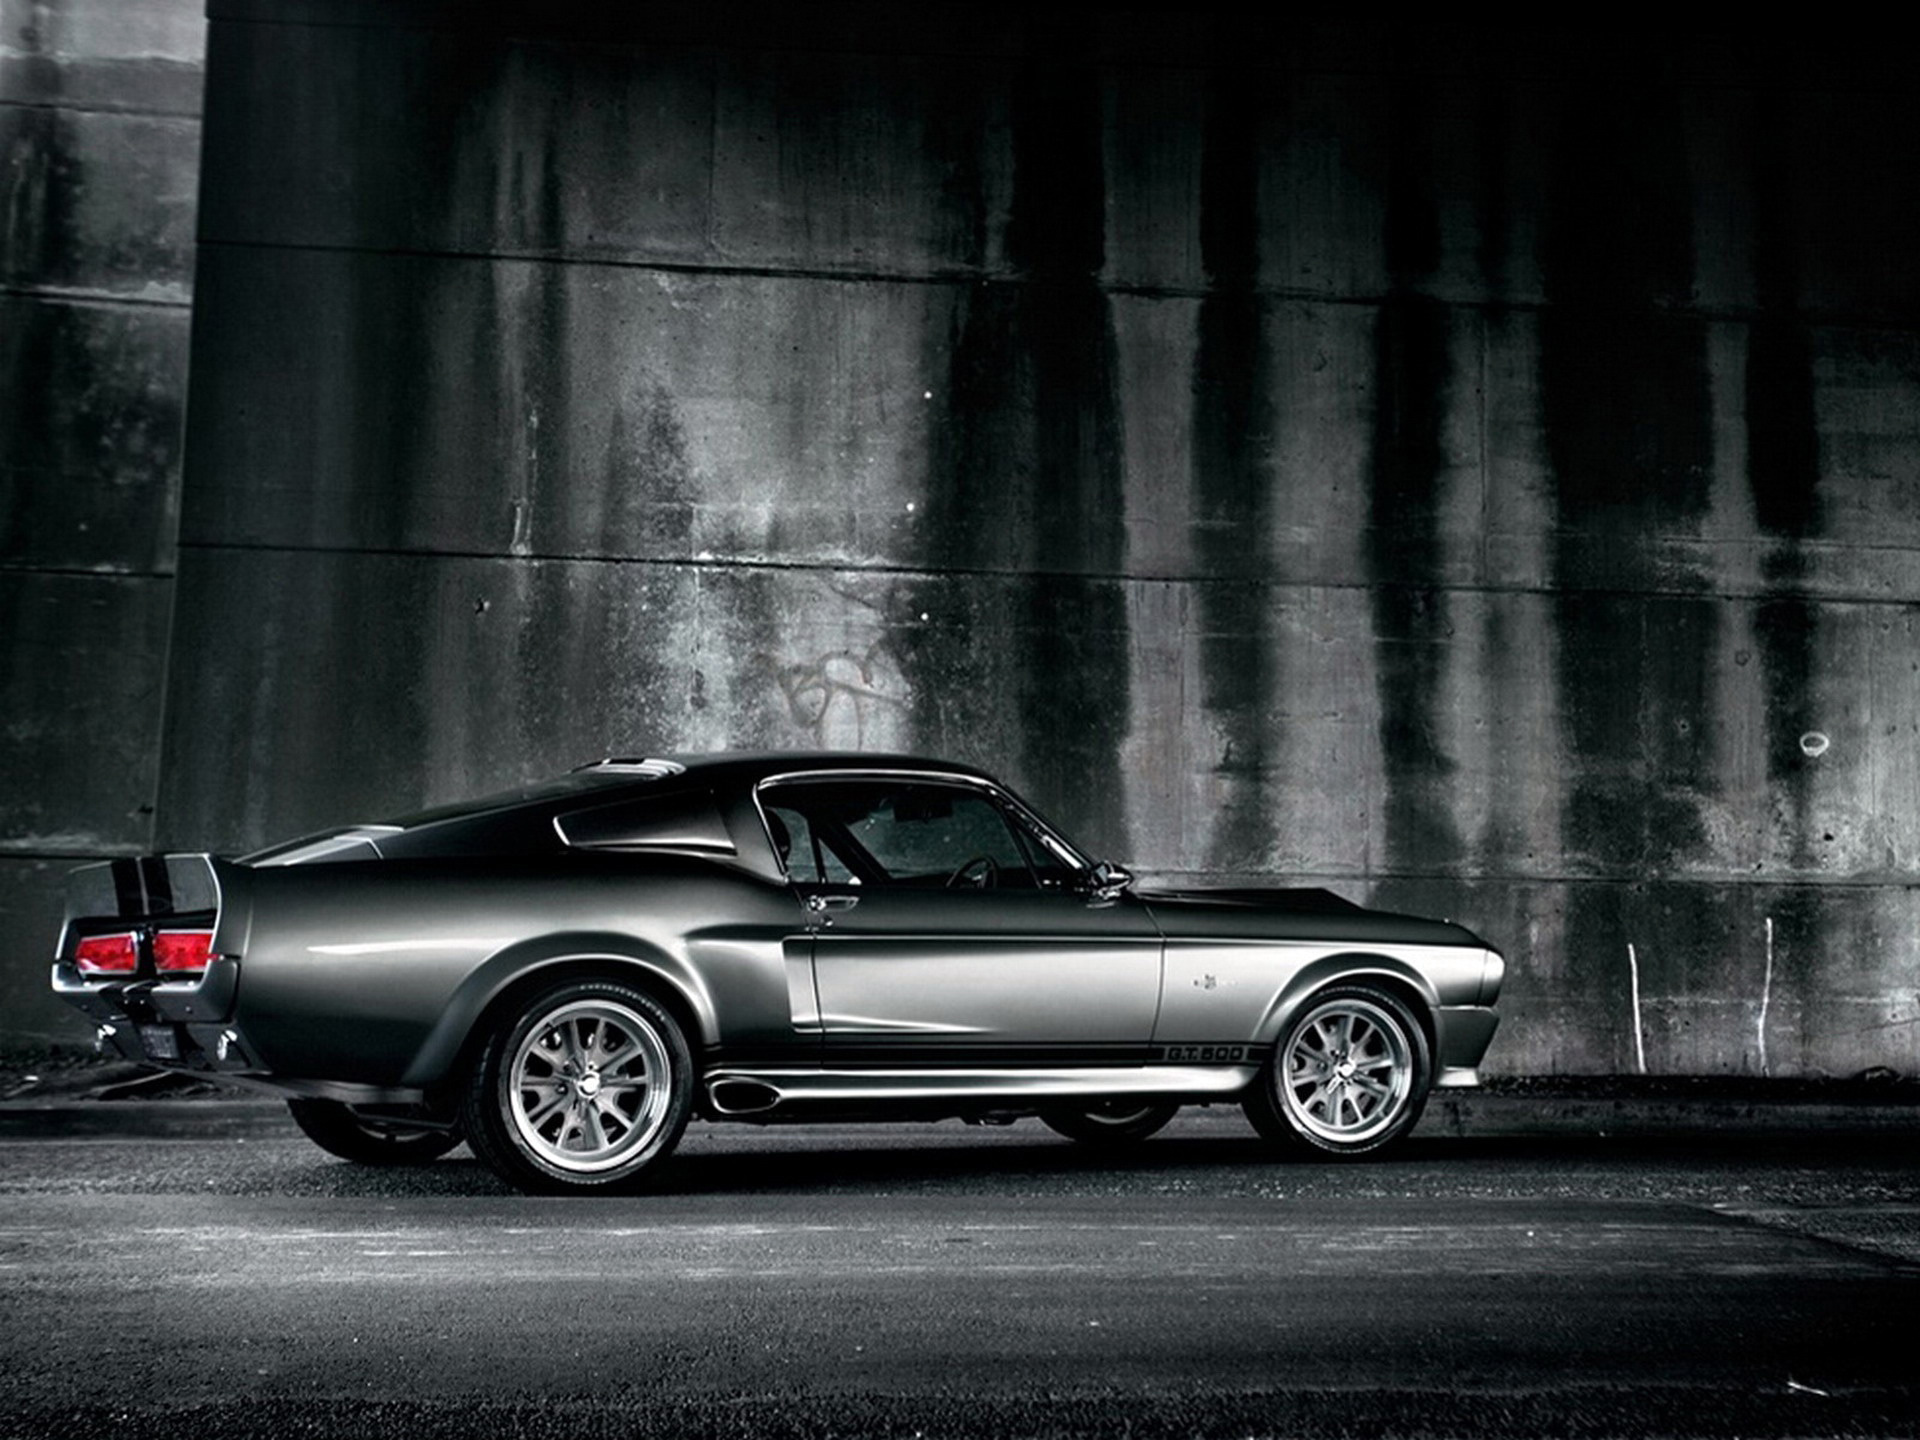 Cars Ford Mustang Shelby Gt500 Wallpaper 1920x1440 16894